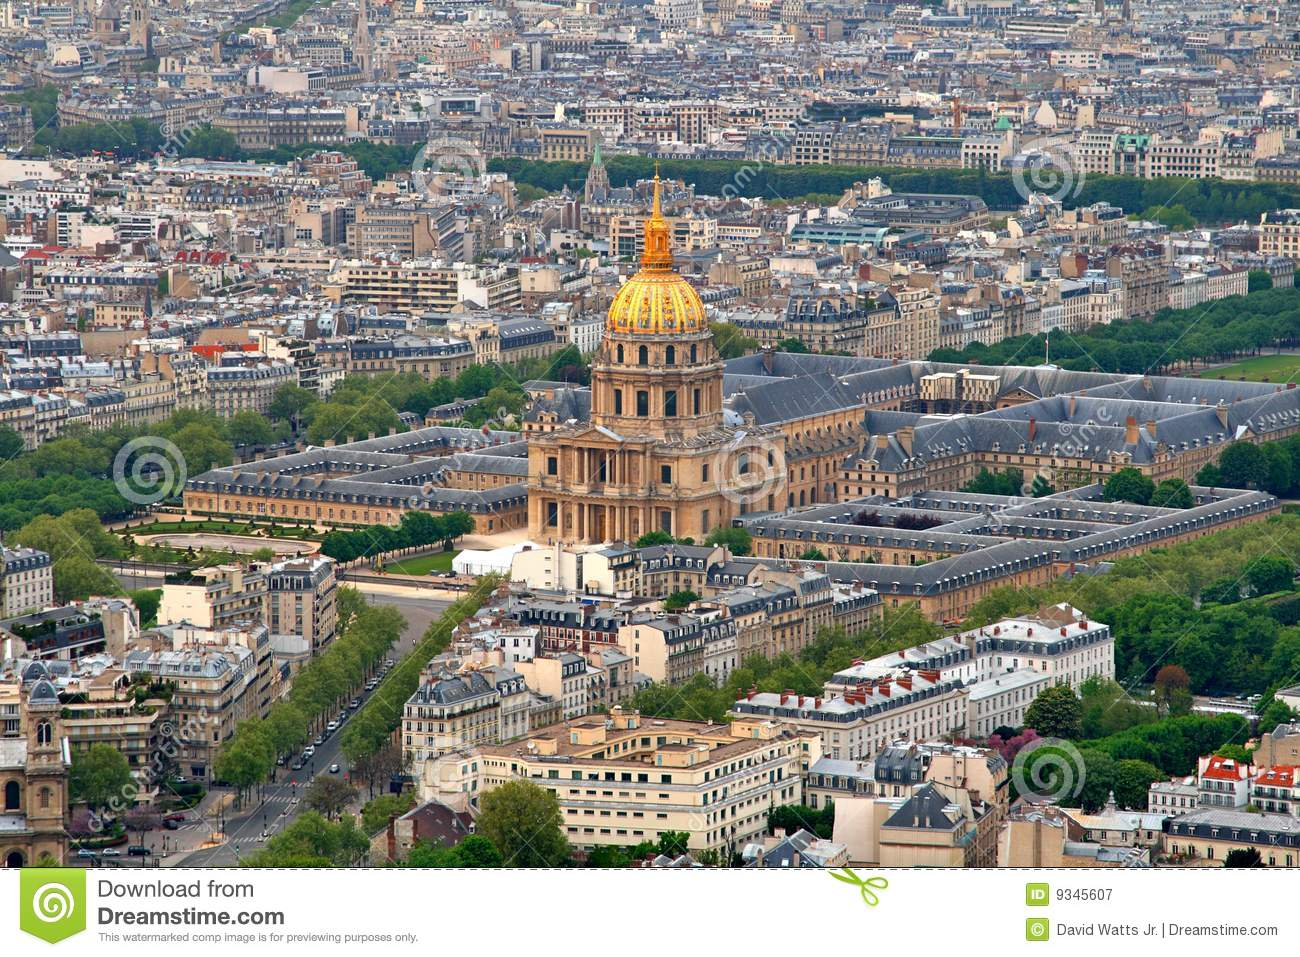 Dome Church at Les Invalides